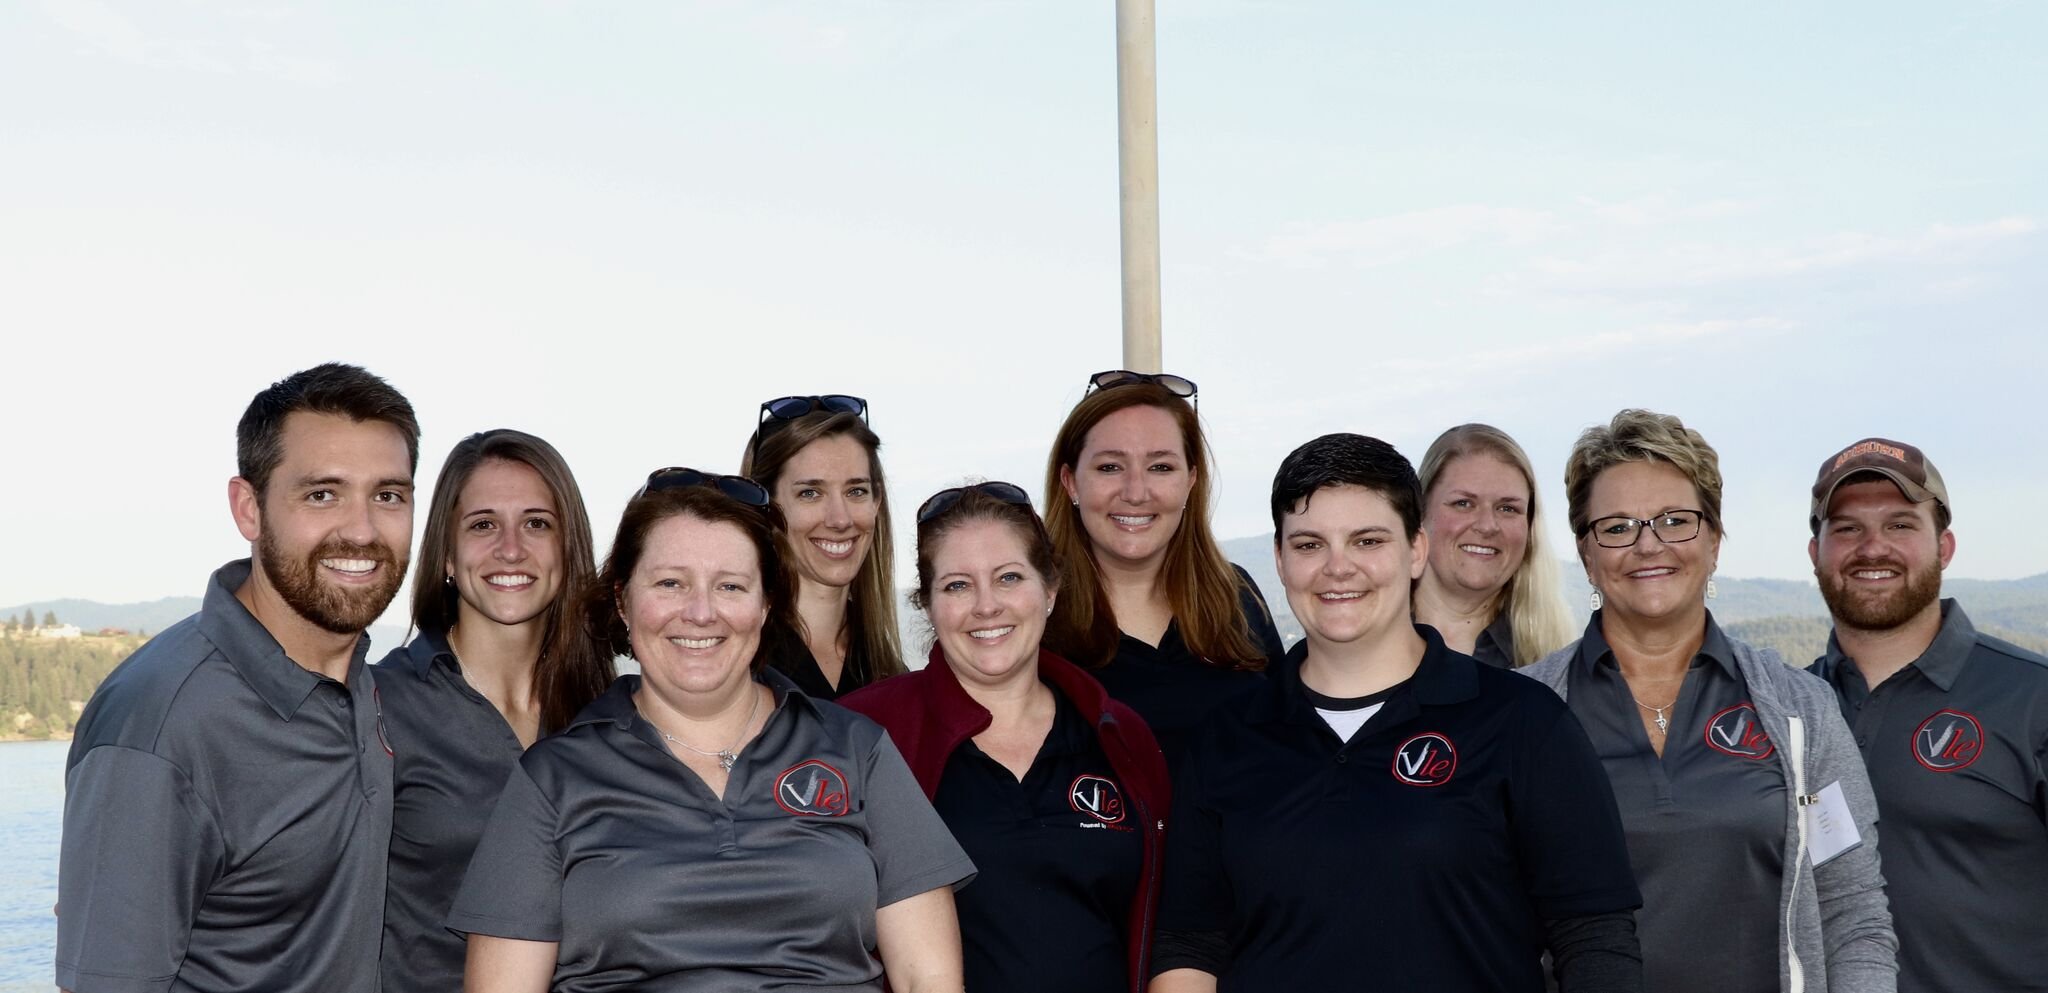 Auburn alumni, faculty and students have a chance to bond at VLE.